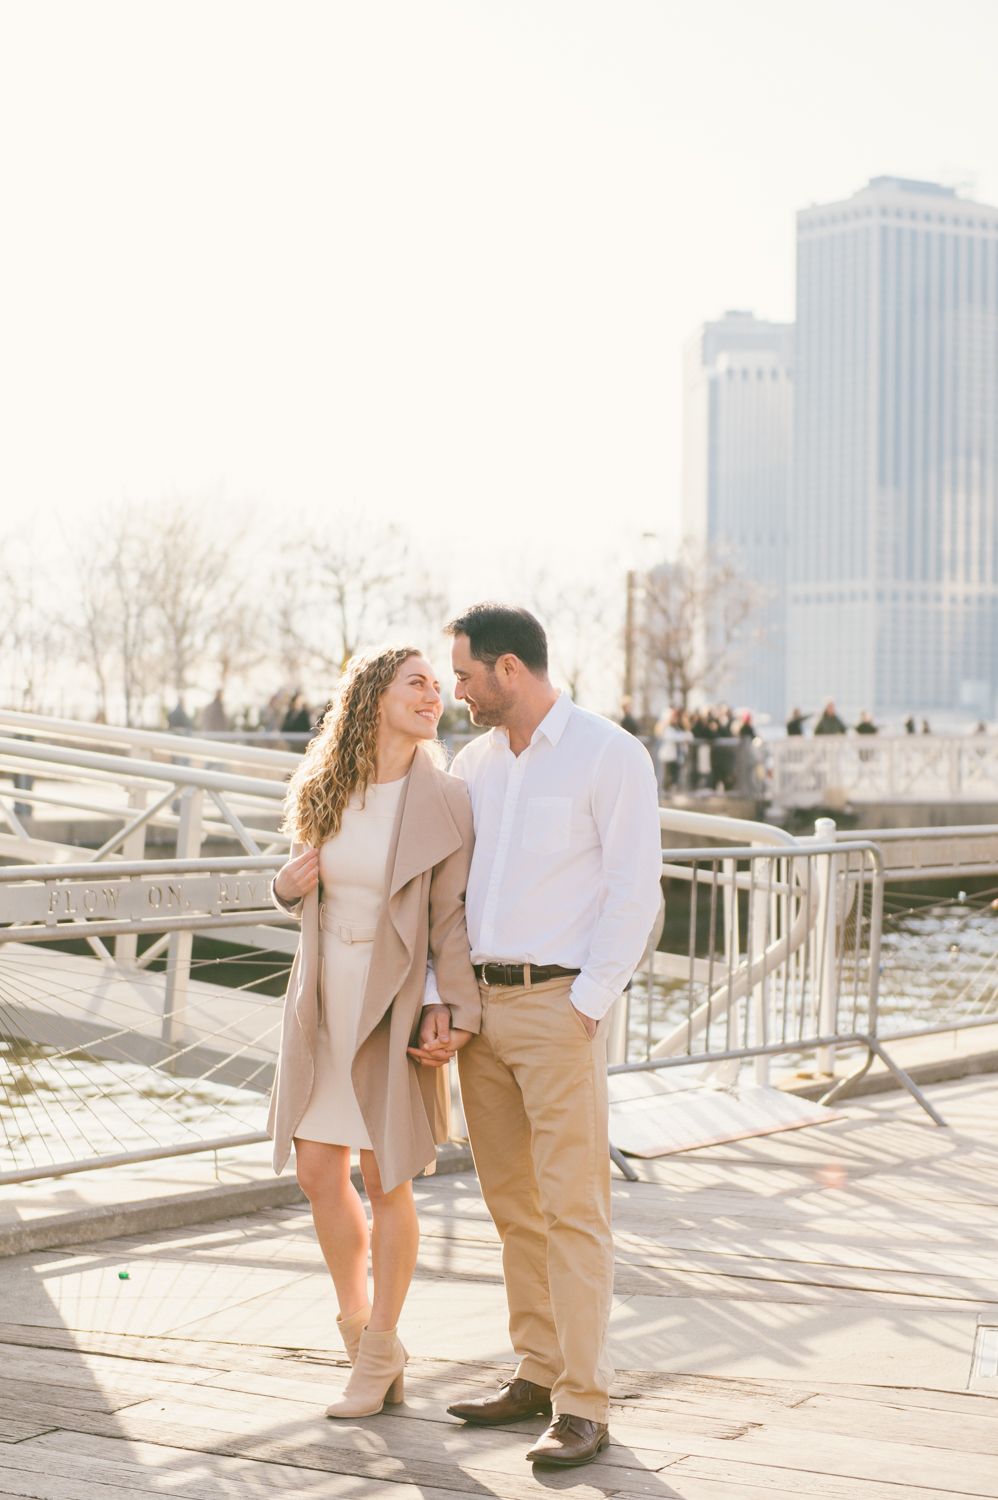 DUMBO.BrooklynBridge.Engagements.MK5.jpg